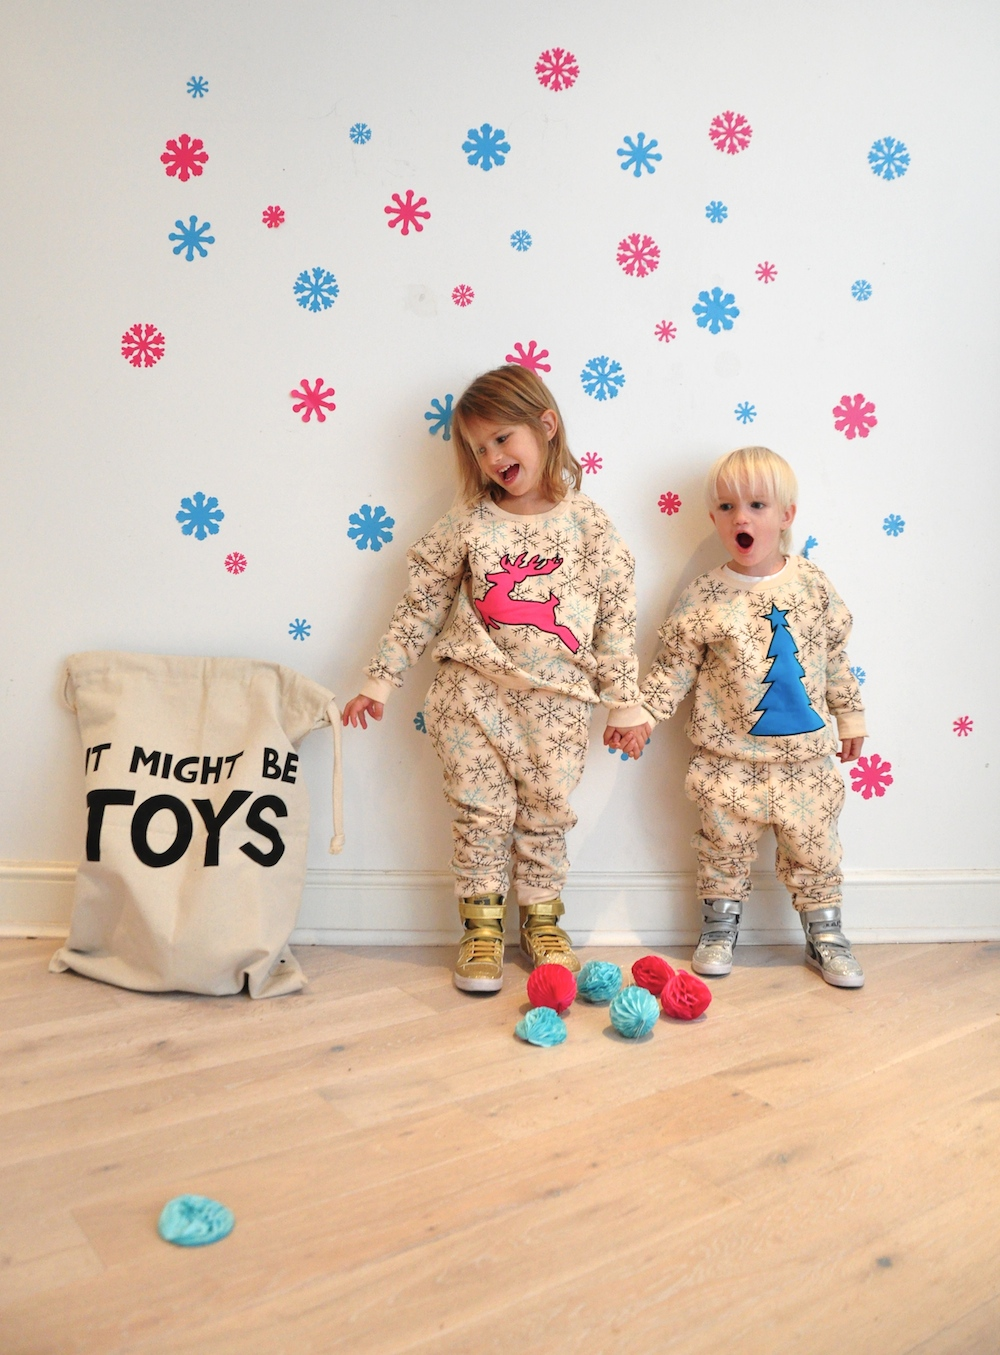 Gardner_and_the_gang_harrods_miniharrods_Christmas_tellkiddo_kidsen_31